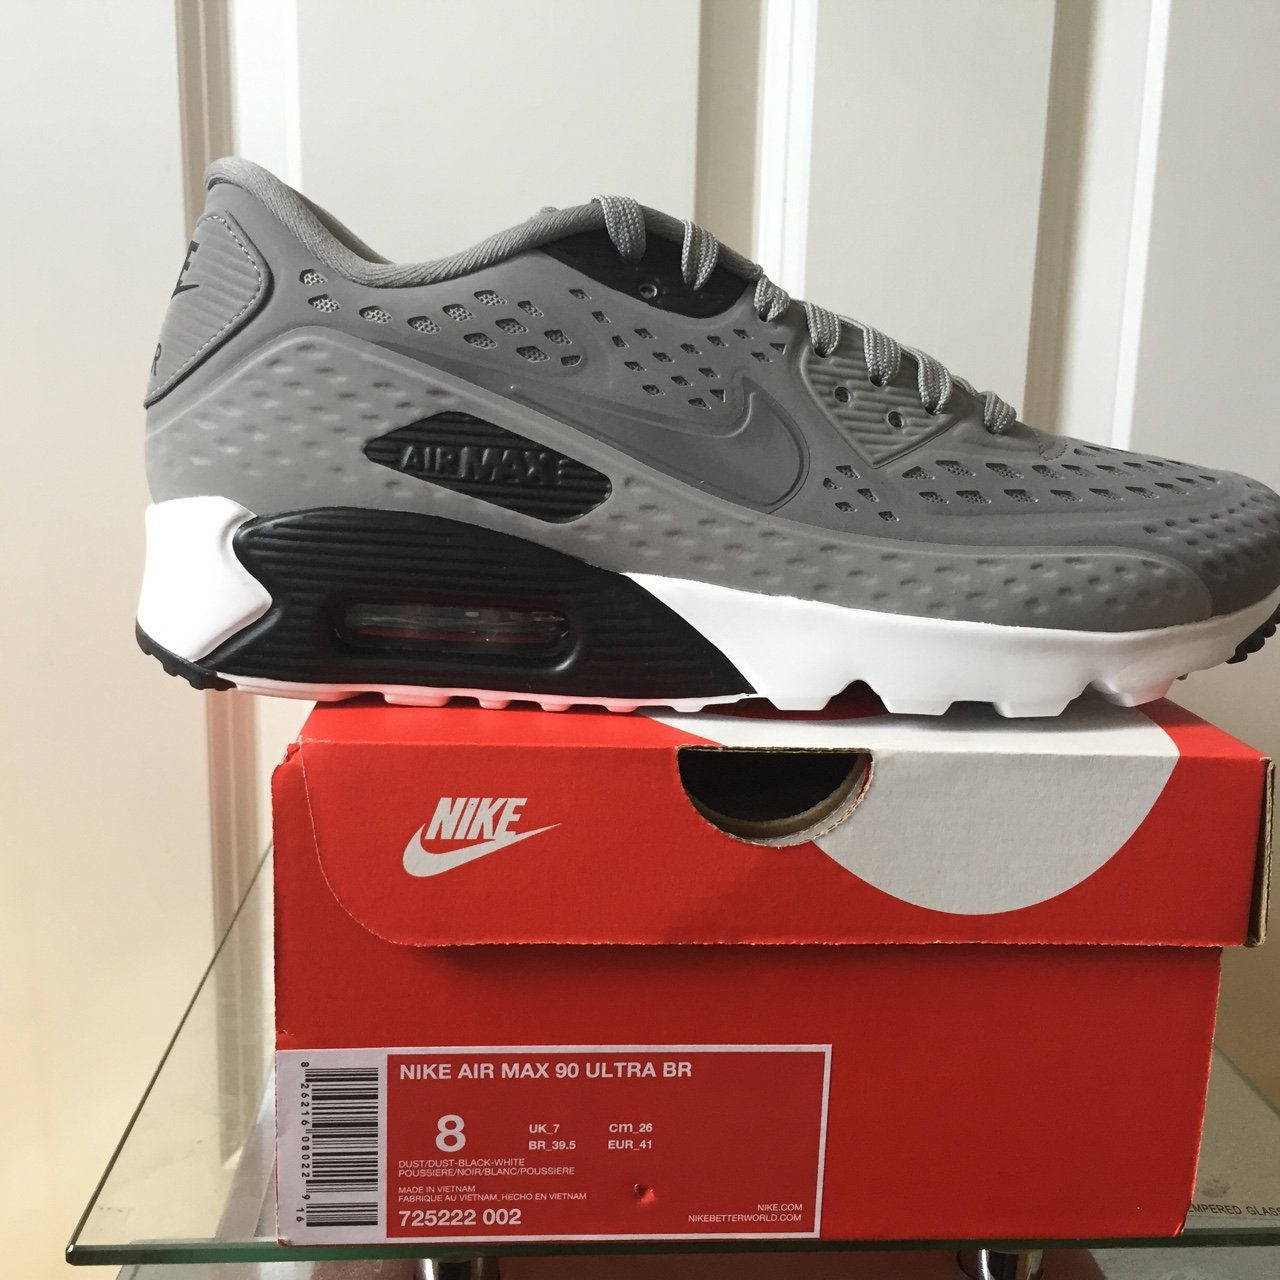 new concept e3a48 1166a scotthildersley. 4 years ago. York, United Kingdom. Nike air max 90 ultra  BR.